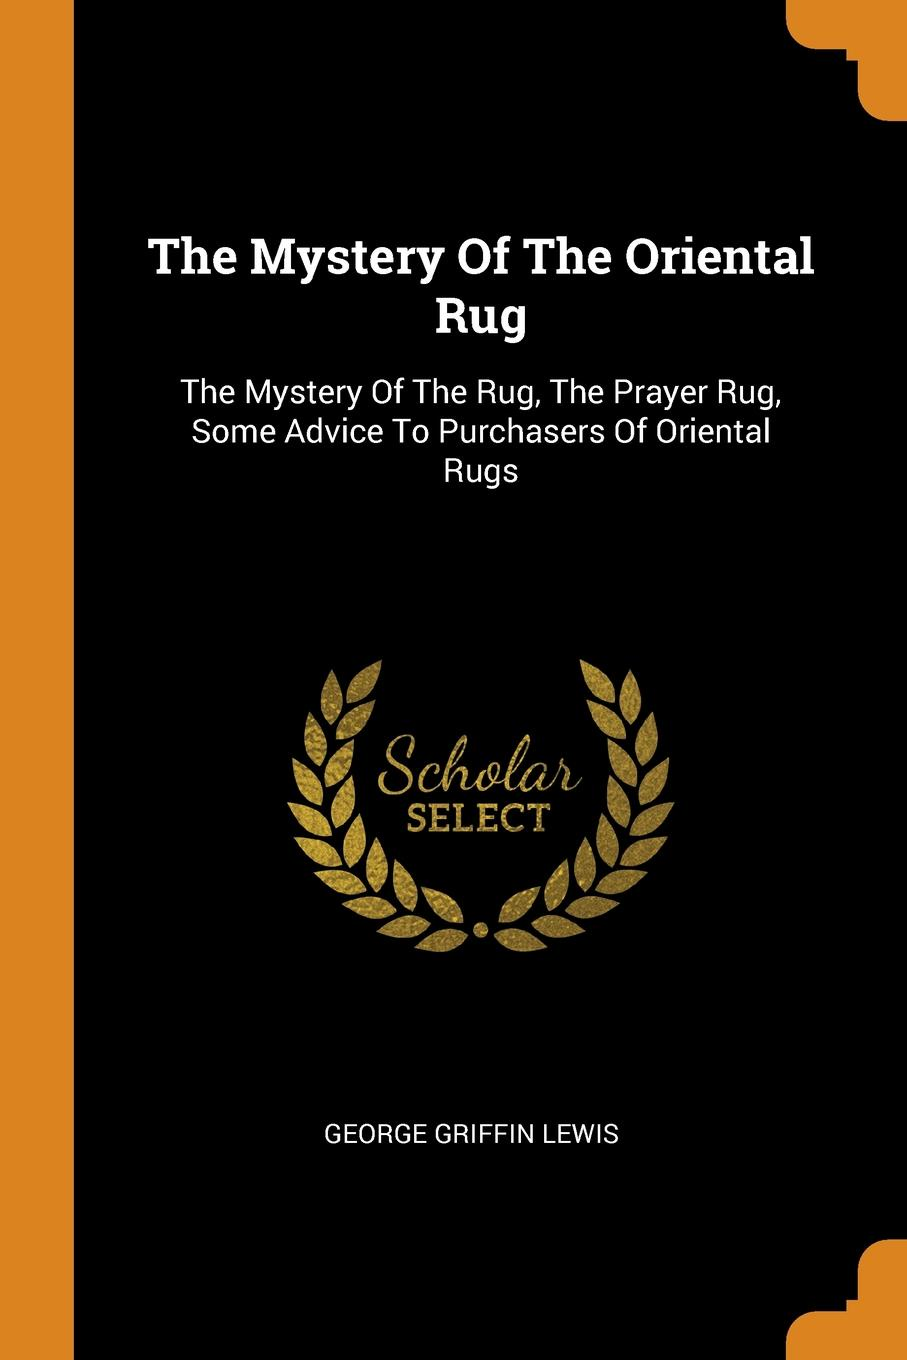 George Griffin Lewis The Mystery Of The Oriental Rug. The Mystery Of The Rug, The Prayer Rug, Some Advice To Purchasers Of Oriental Rugs george griffin lewis the mystery of the oriental rug